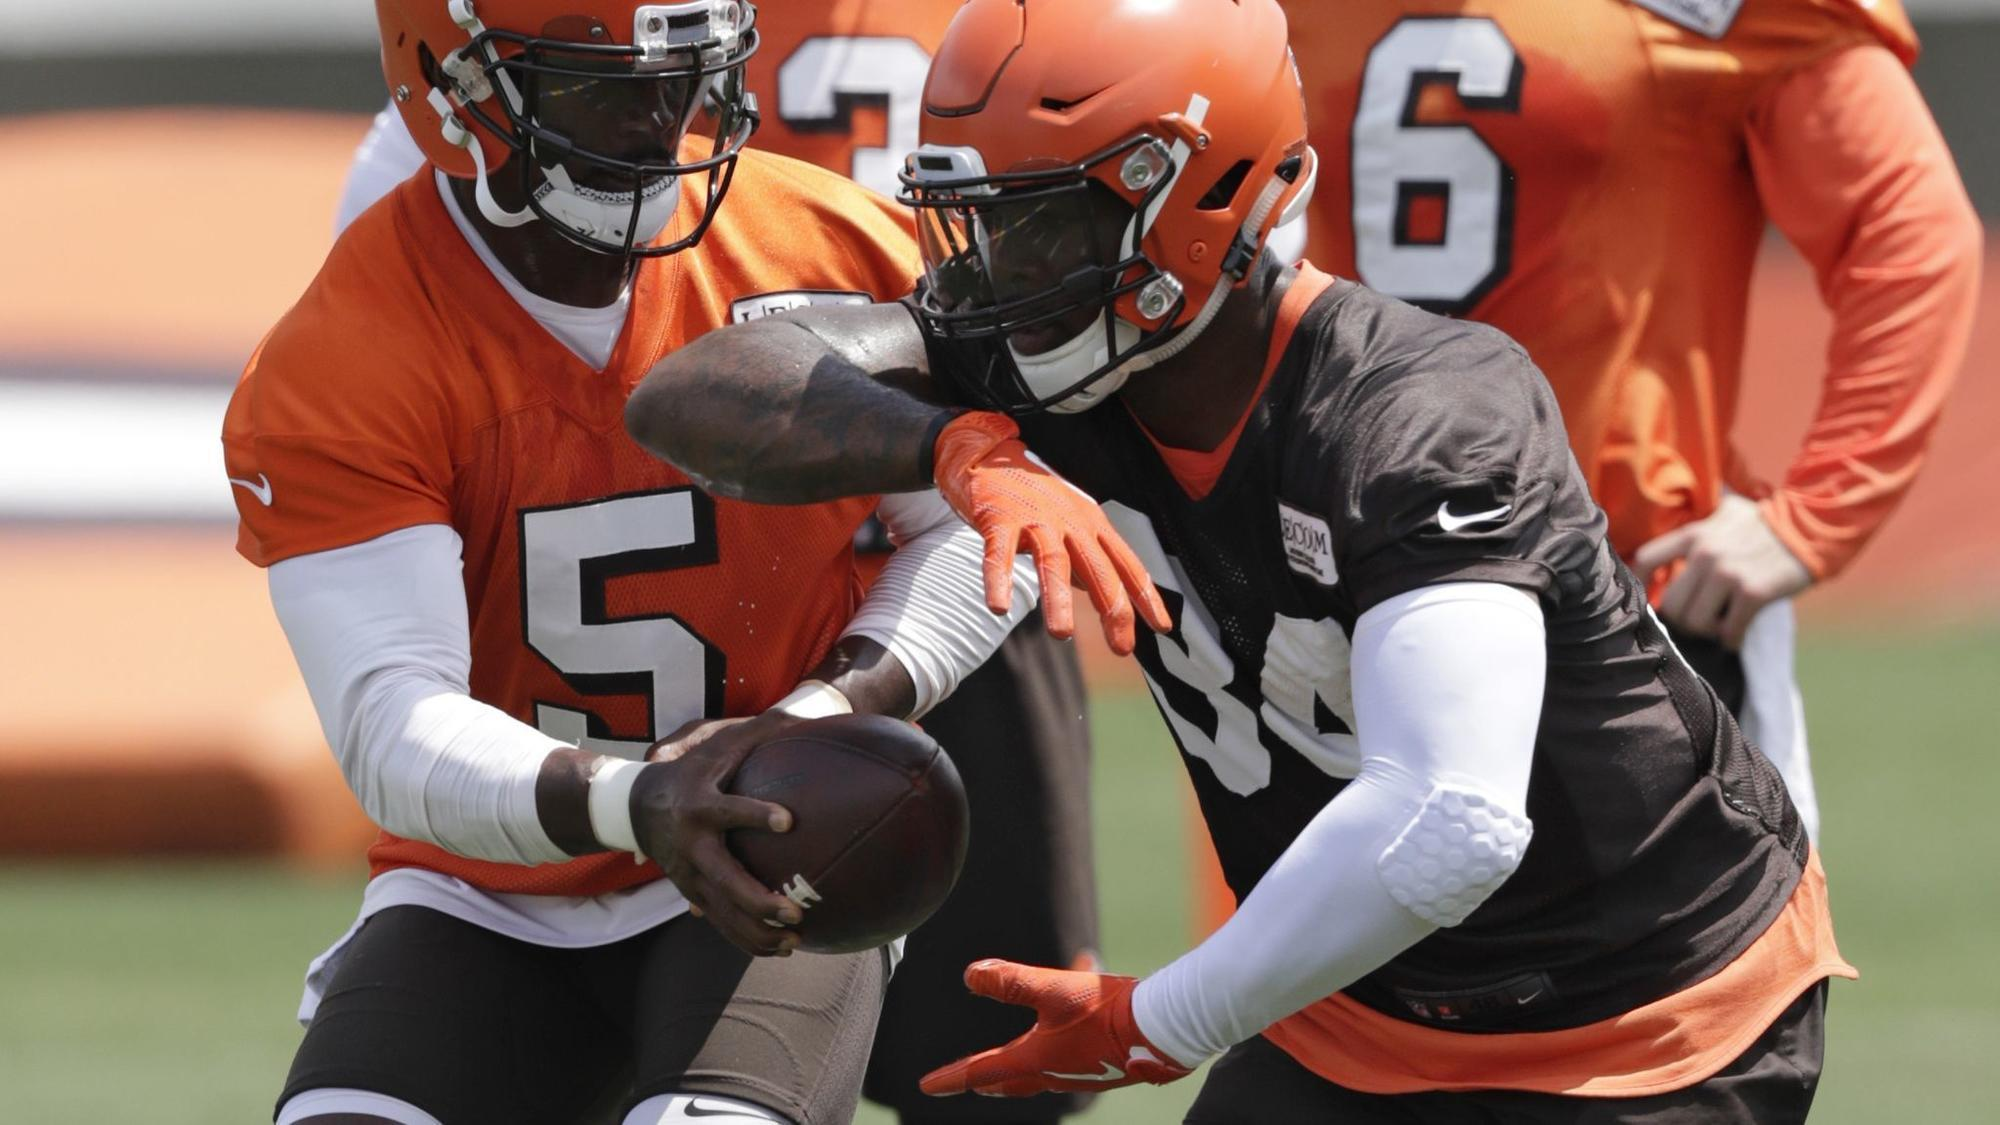 Sd-sp-fantasy-football-2018-cleveland-browns-preview-20180703